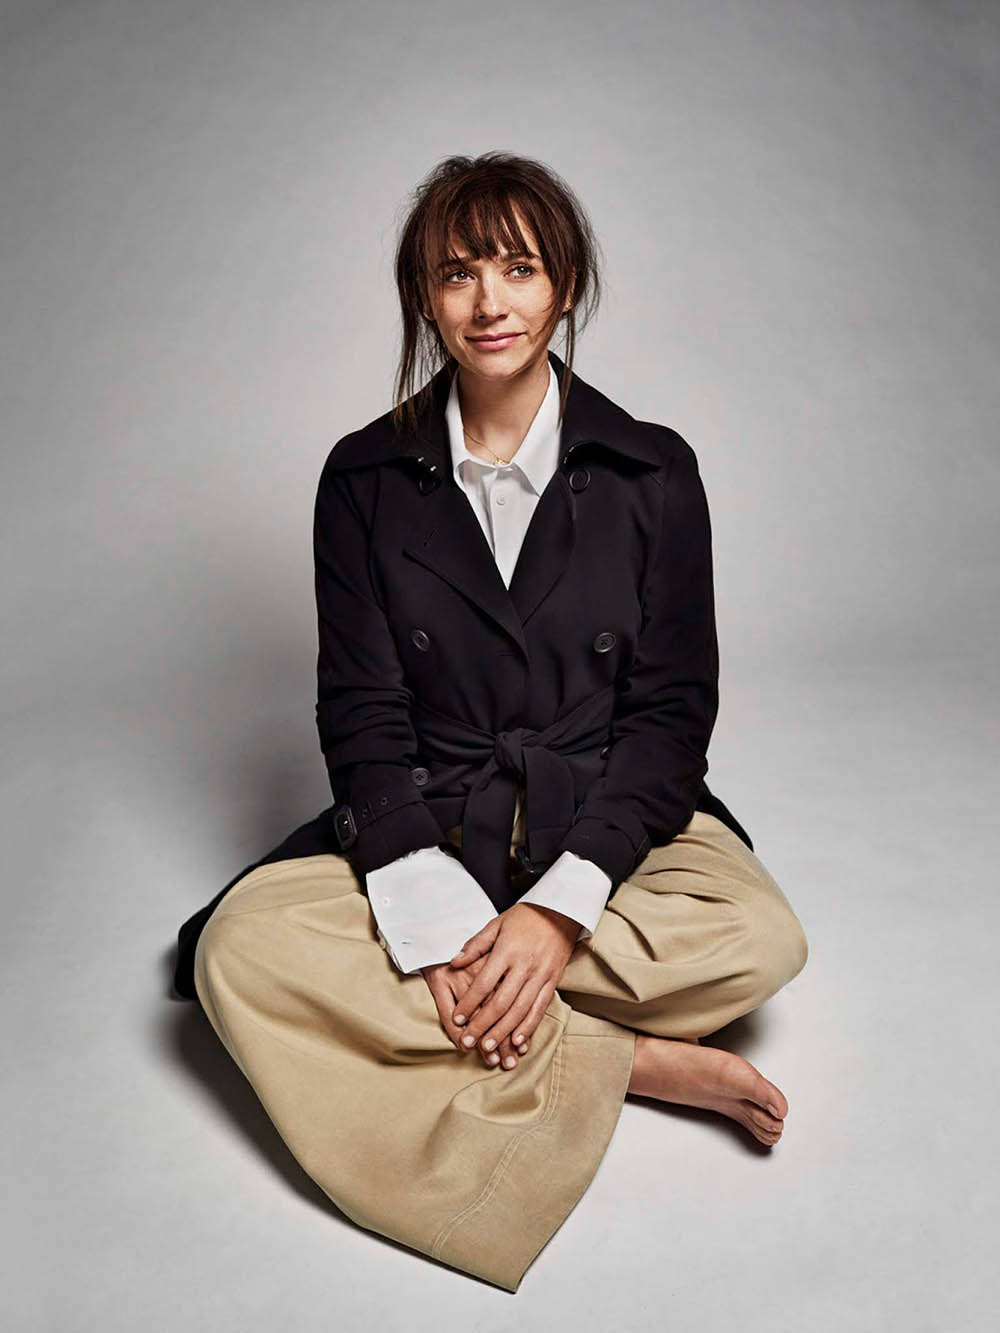 Rashida Jones covers Porter Edit May 18th, 2018 by Billy Kidd